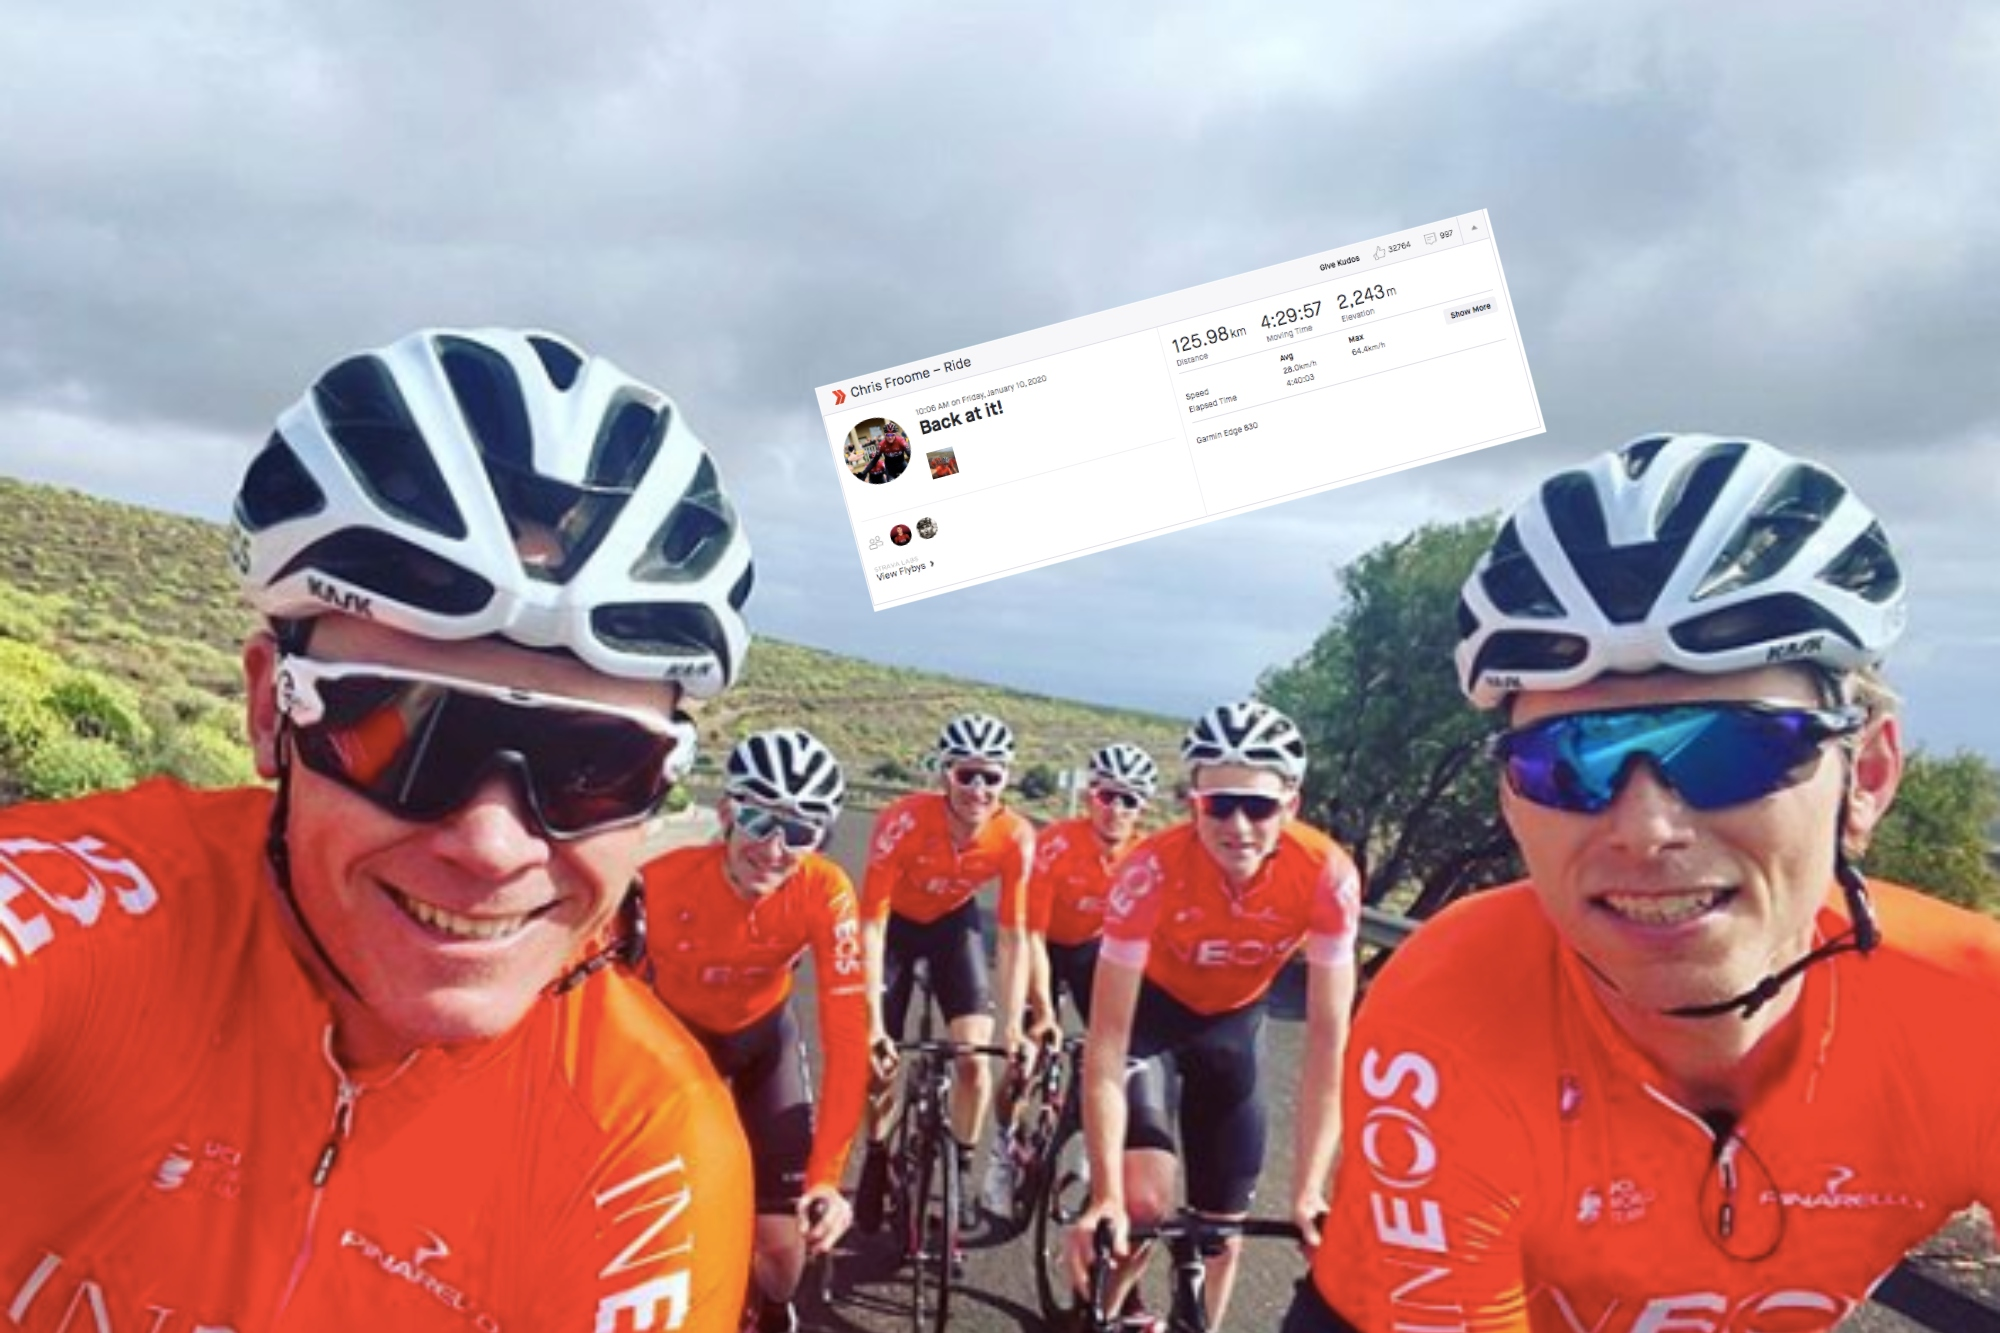 Chris Froome is back on Strava and is posting some monster training rides